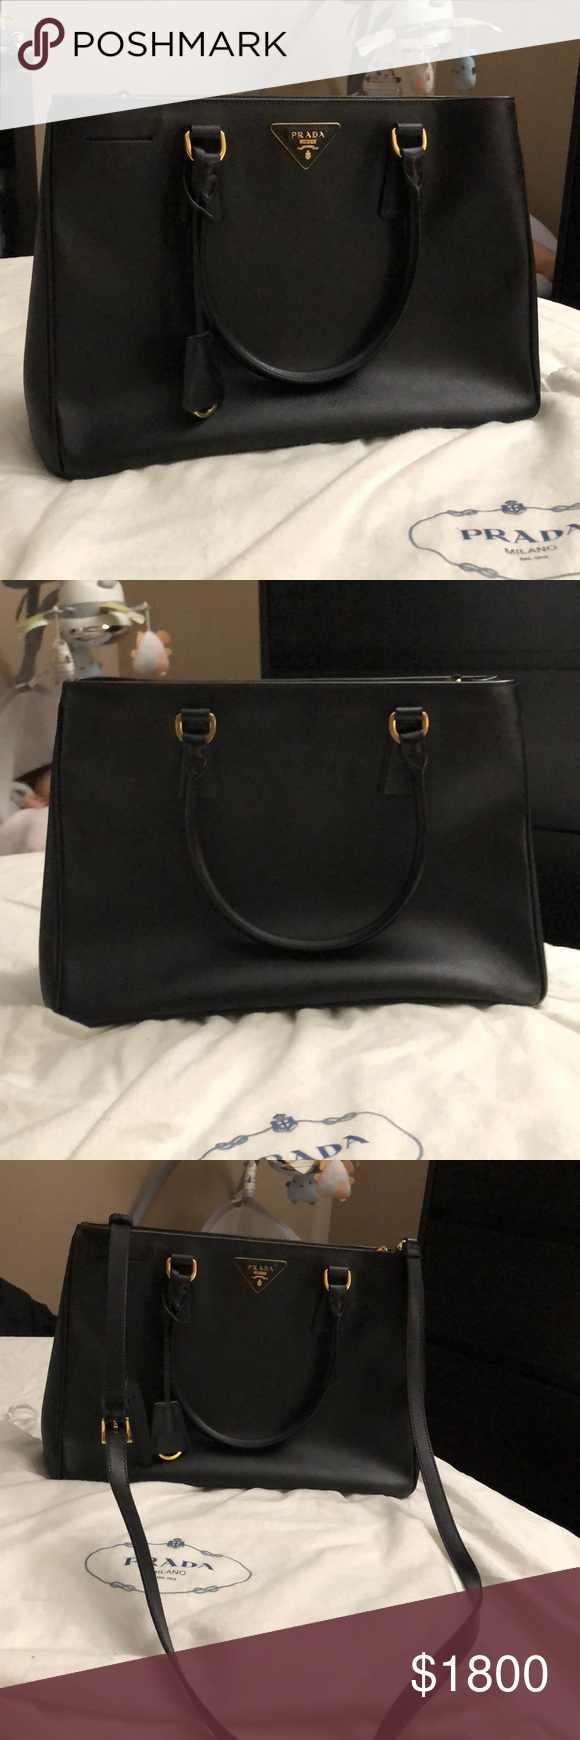 494bf302ff3b Authentic Prada Black Saffiano Lux Nero Tu In great condition. Dust bag  included. Prada Bags Shoulder Bags